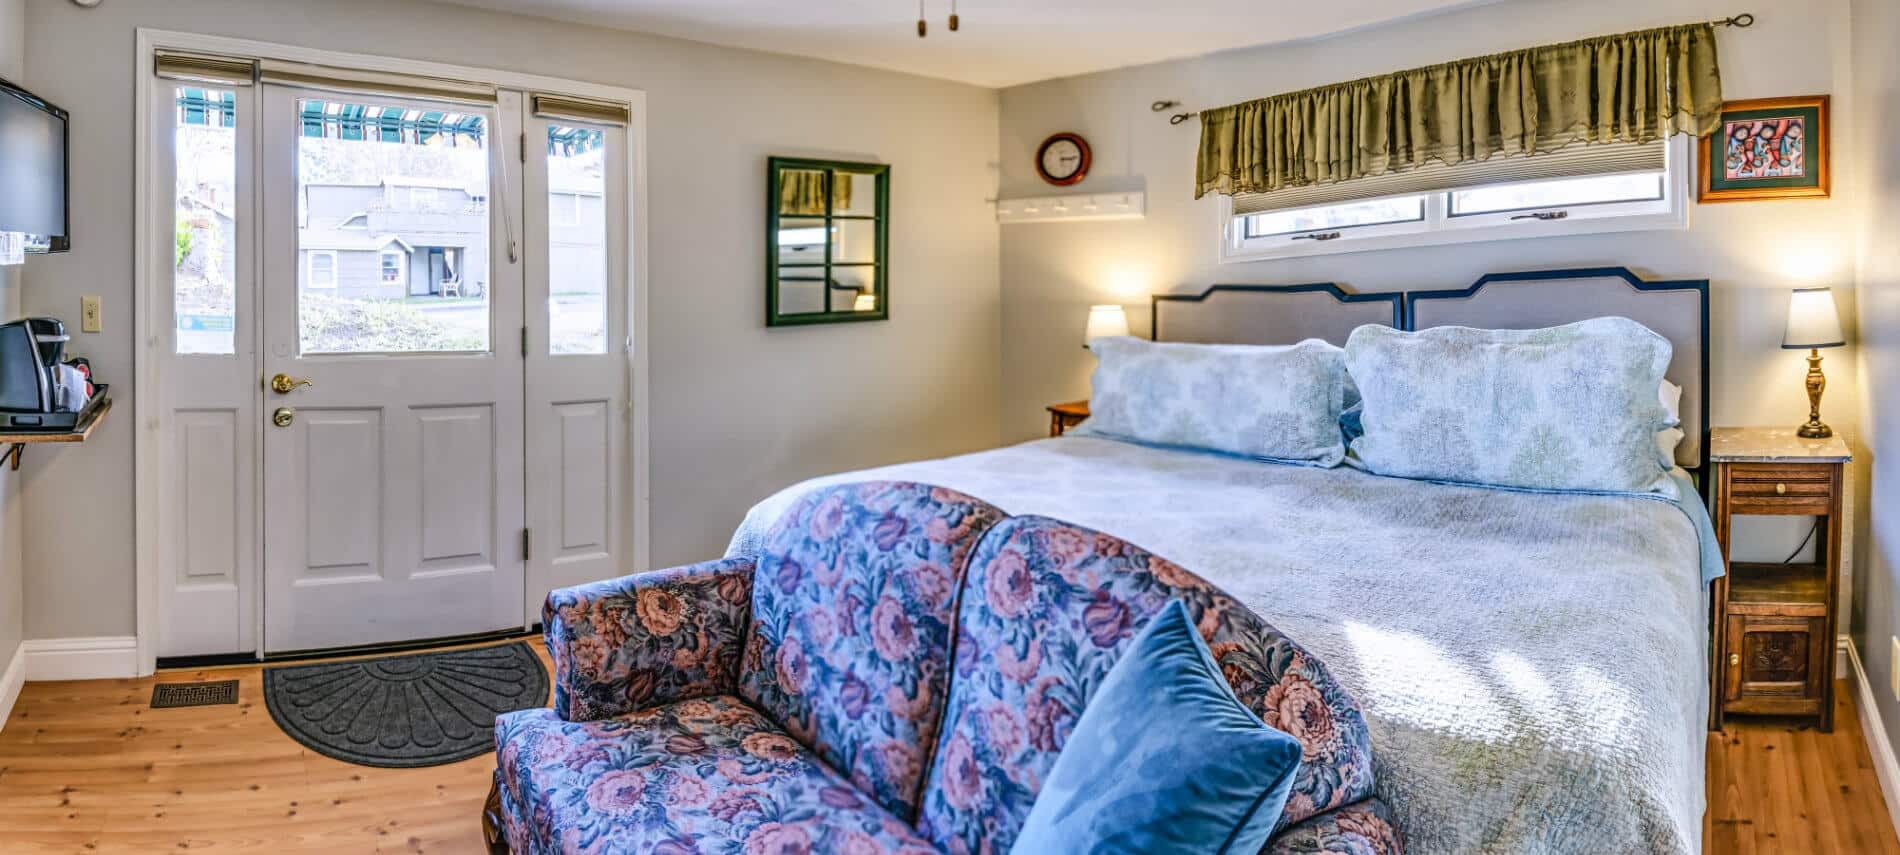 A white guest room with light blue and white patterned bedding and a blue and pink floral couch